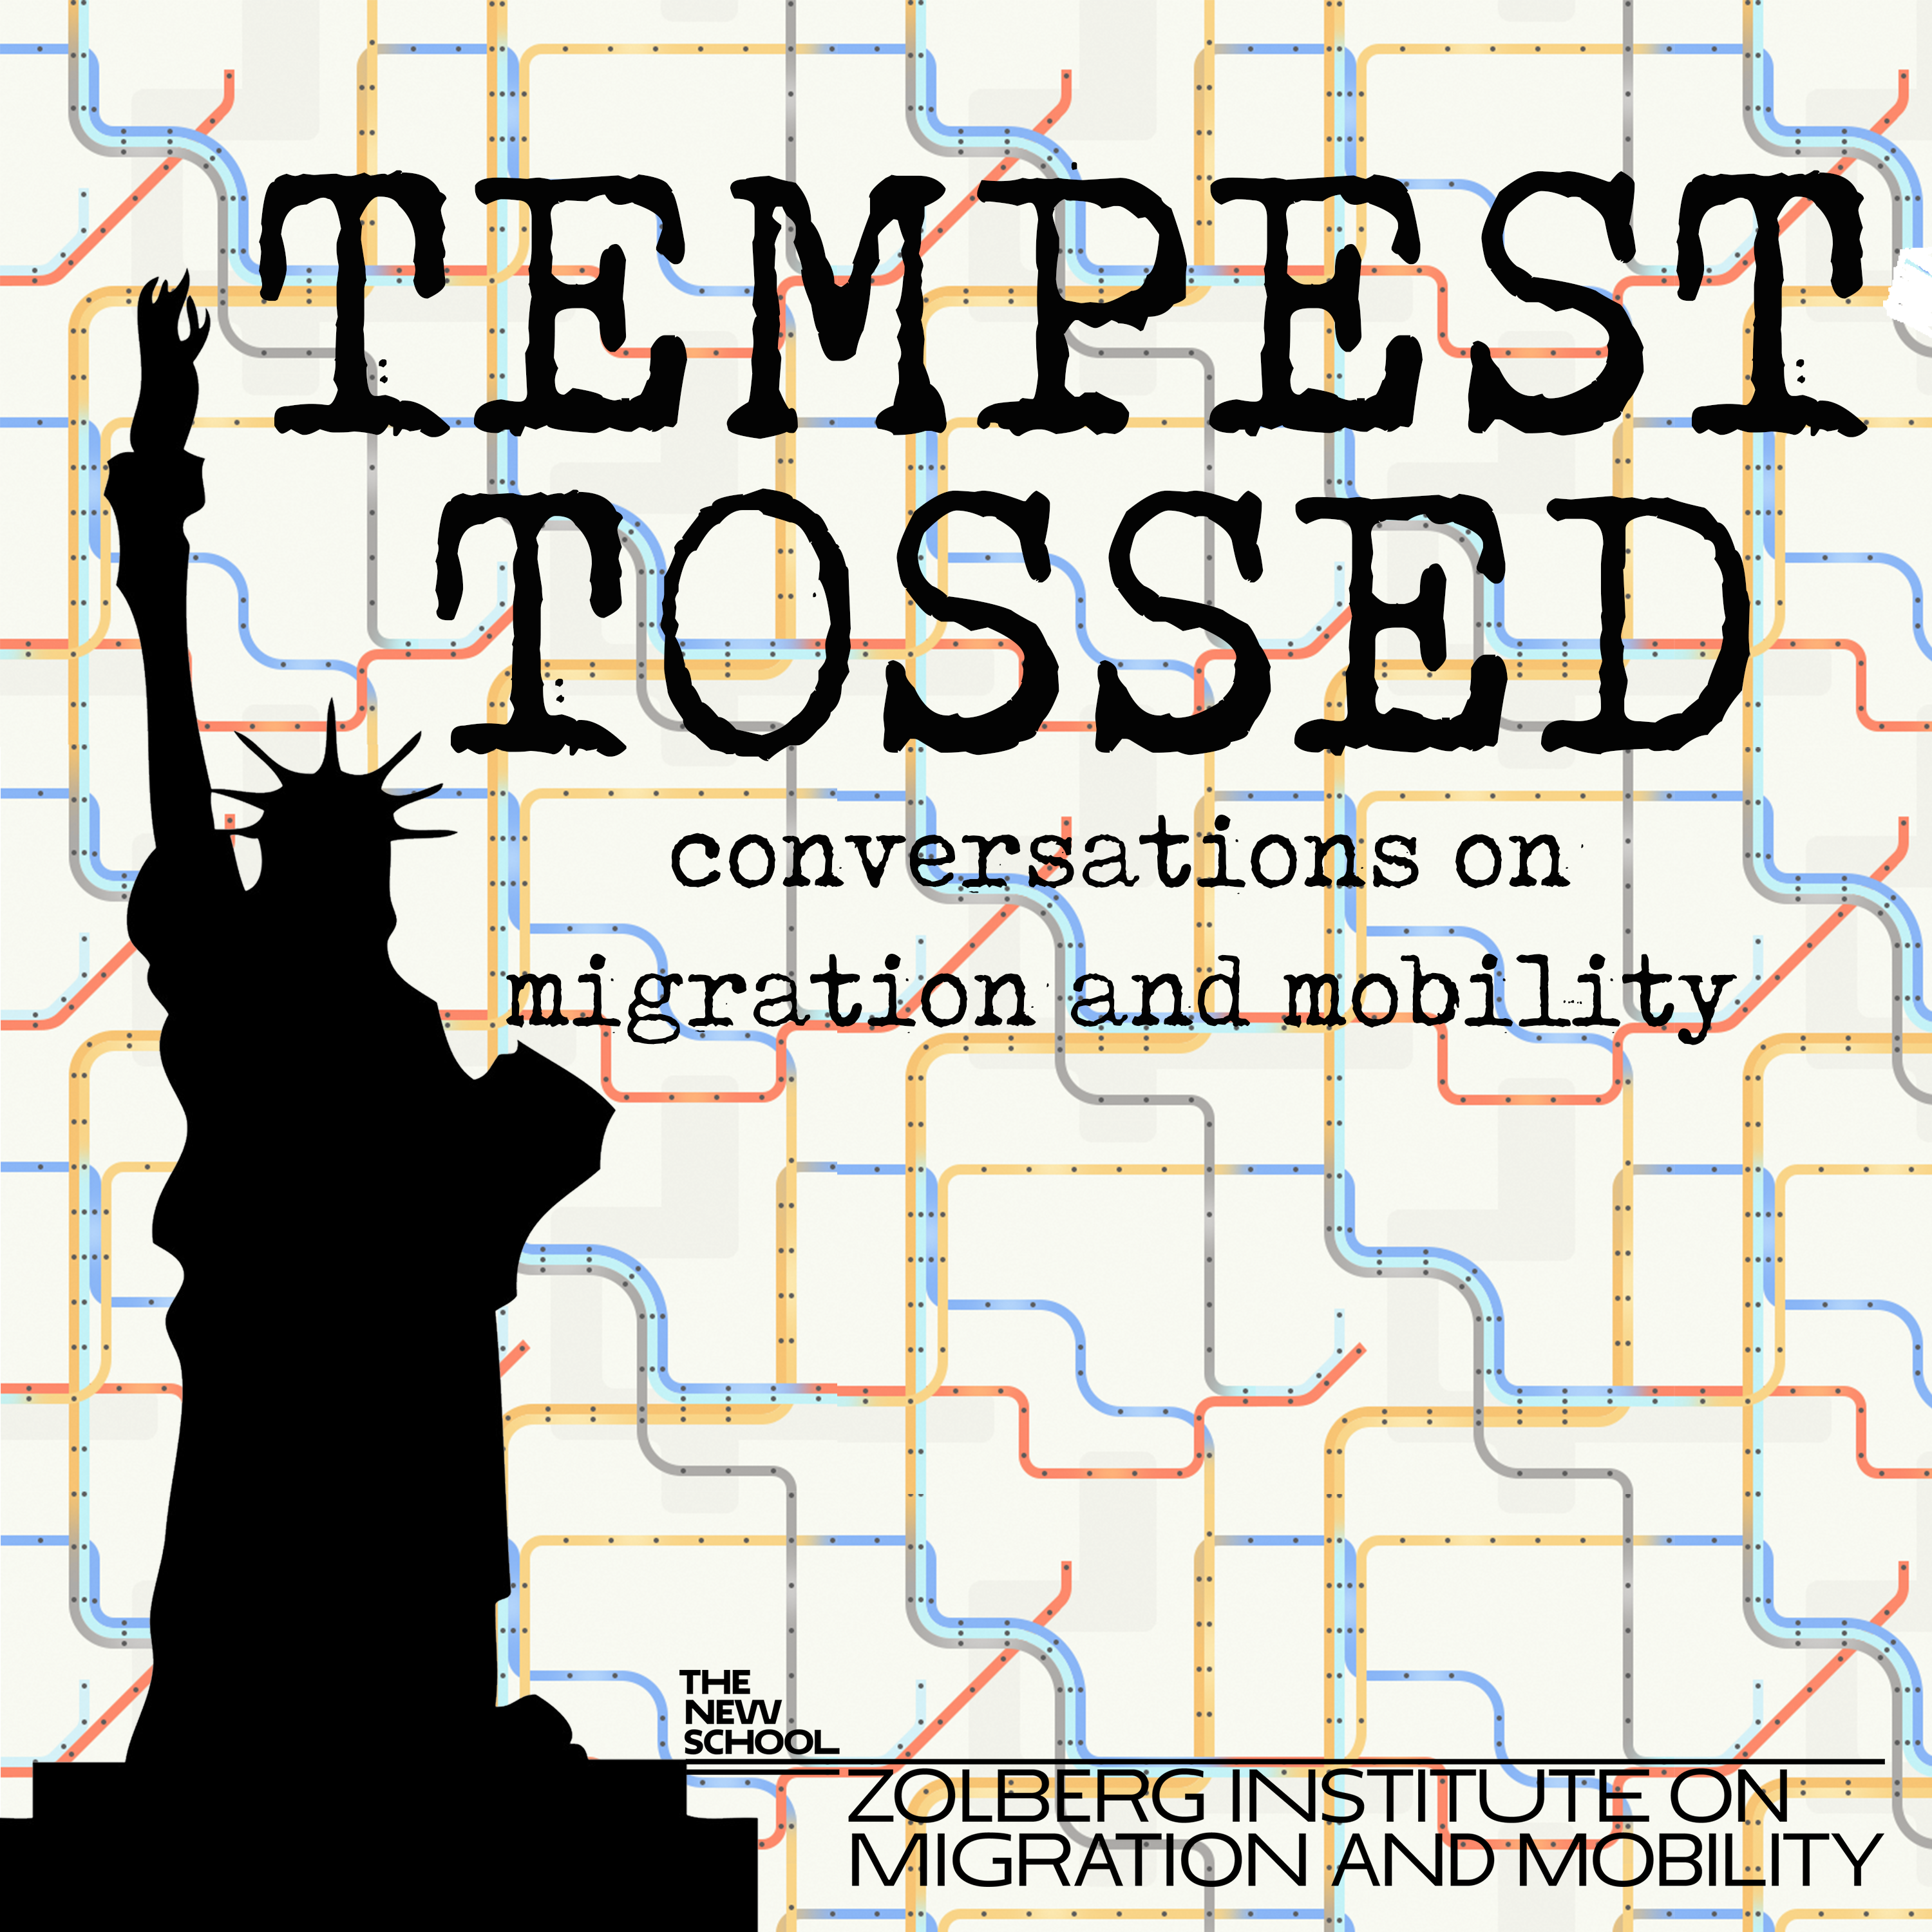 tempest tossed by alex aleinikoff on apple podcasts Apple iPhone Mini tempest tossed v5